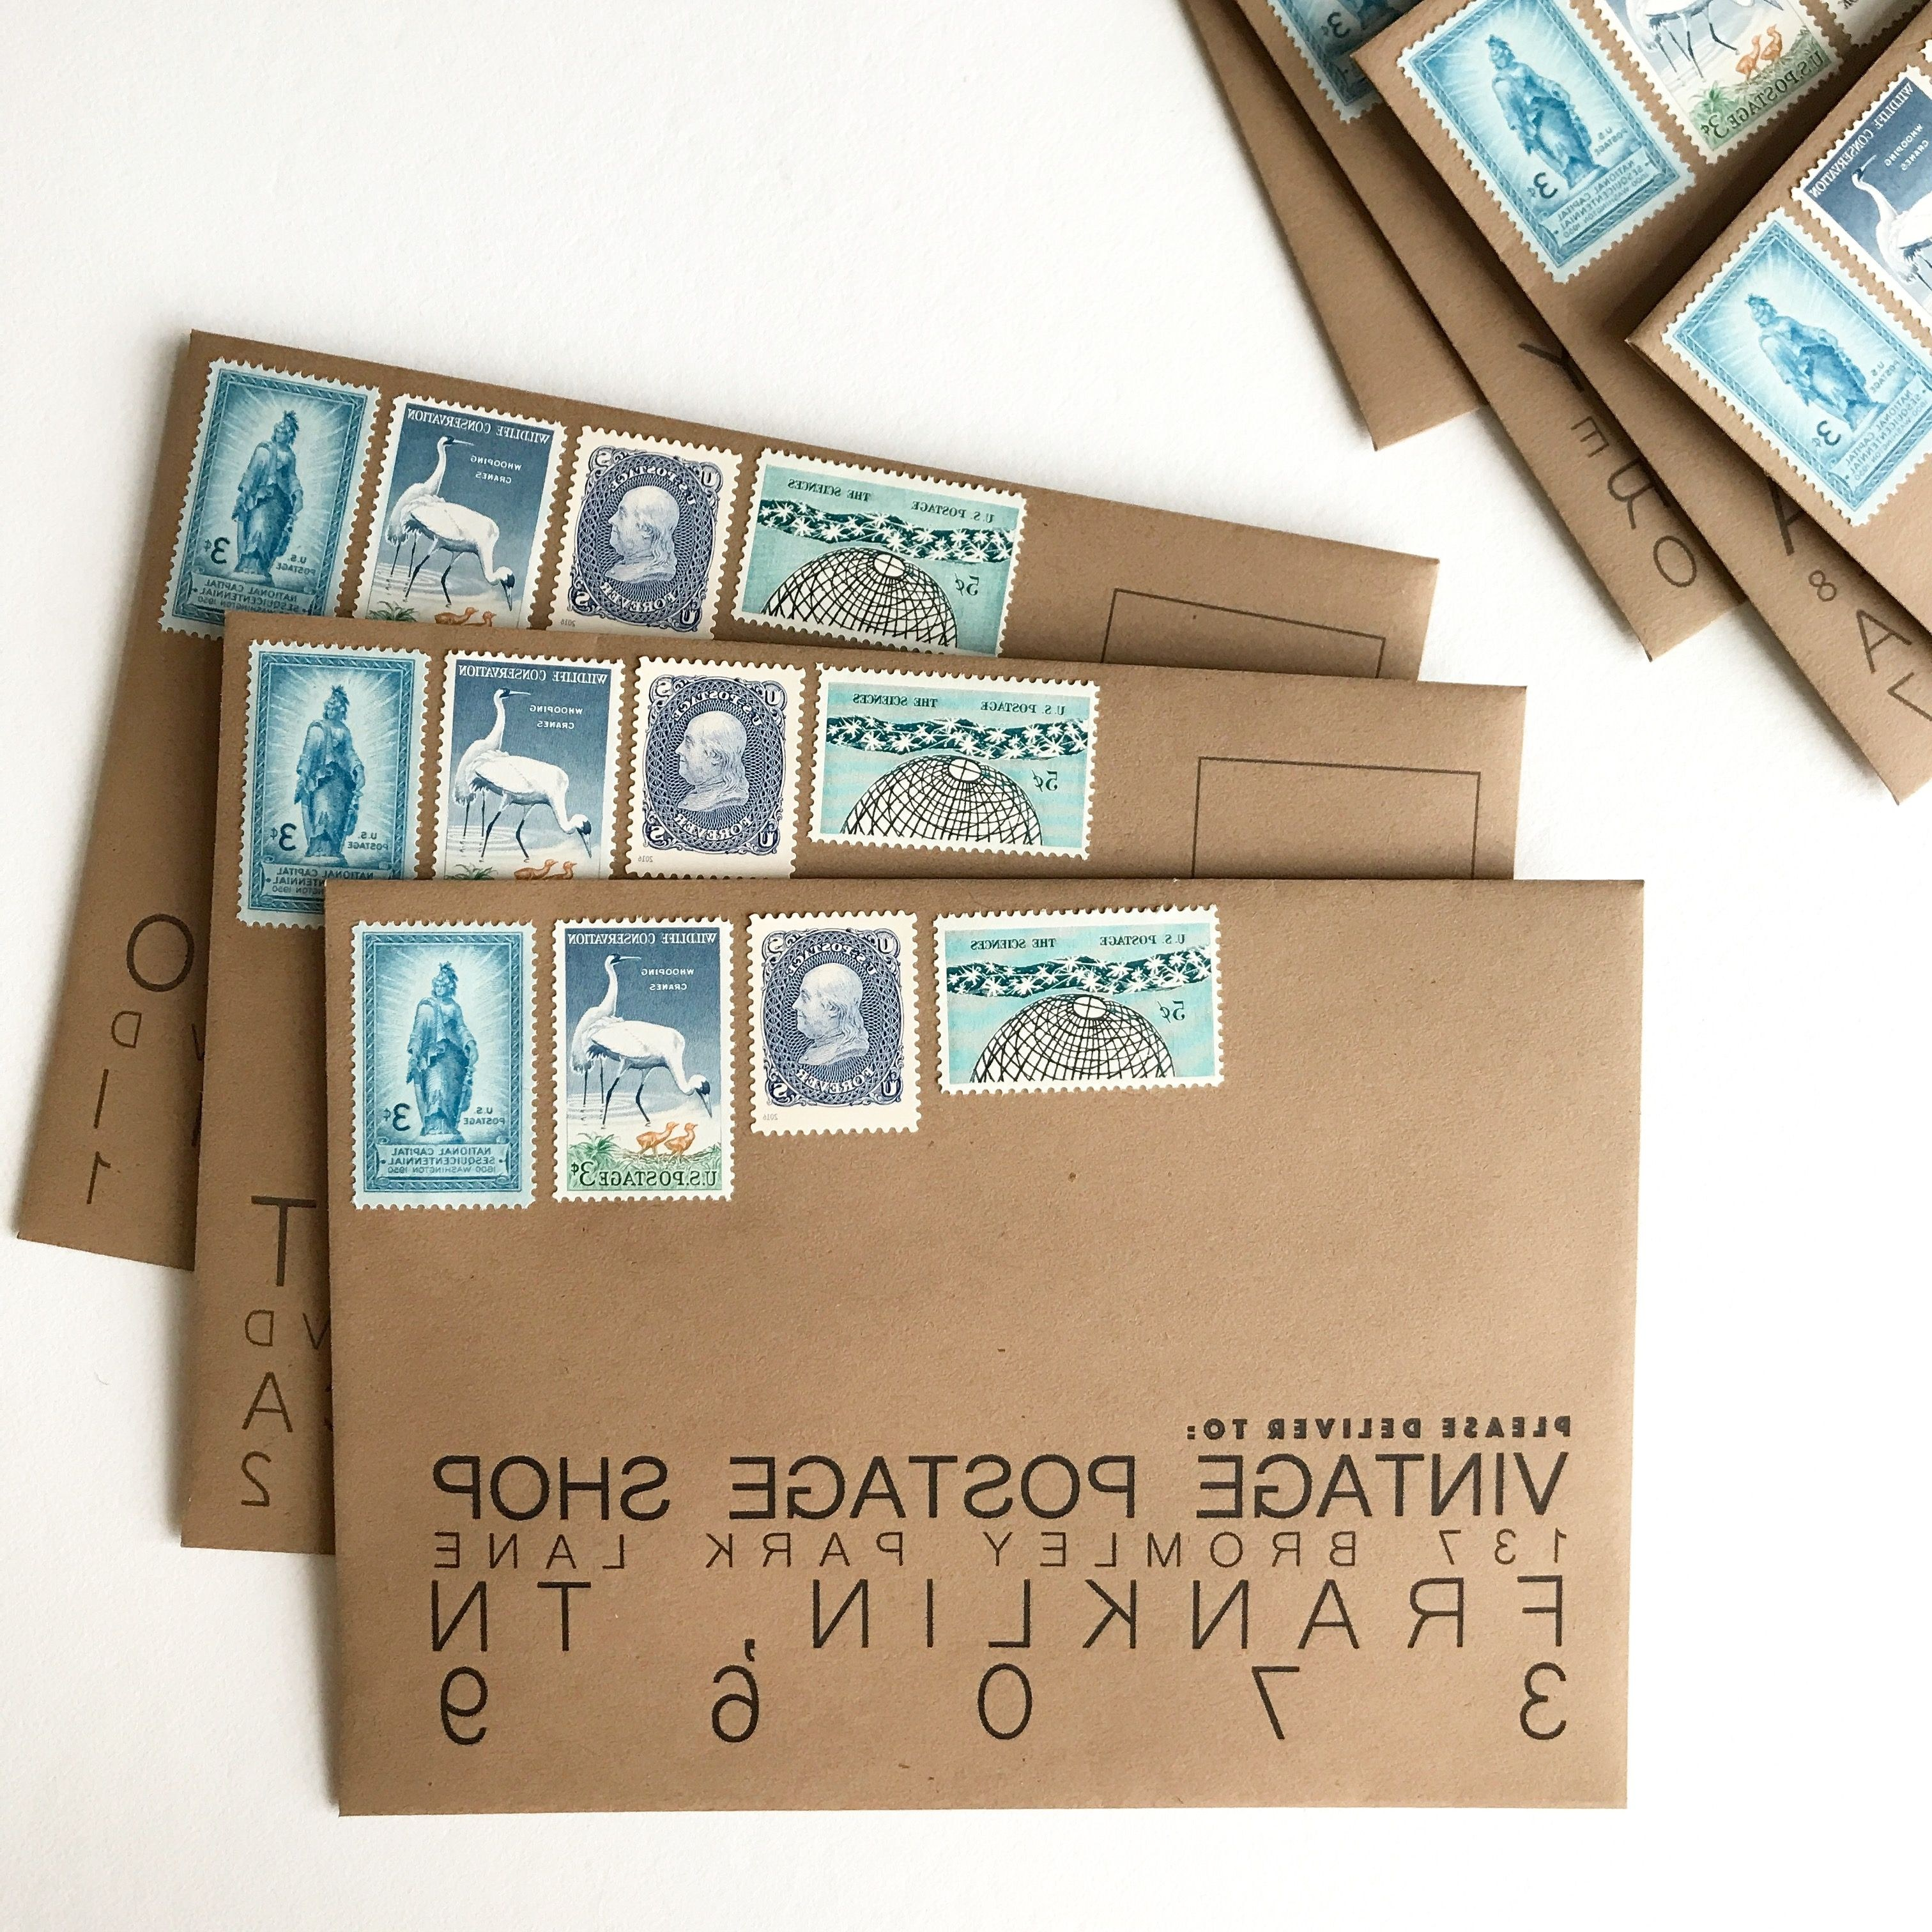 Bentuk Gamis Pernikahan 9fdy Curated Postage Stamps for Wedding Invites Save the